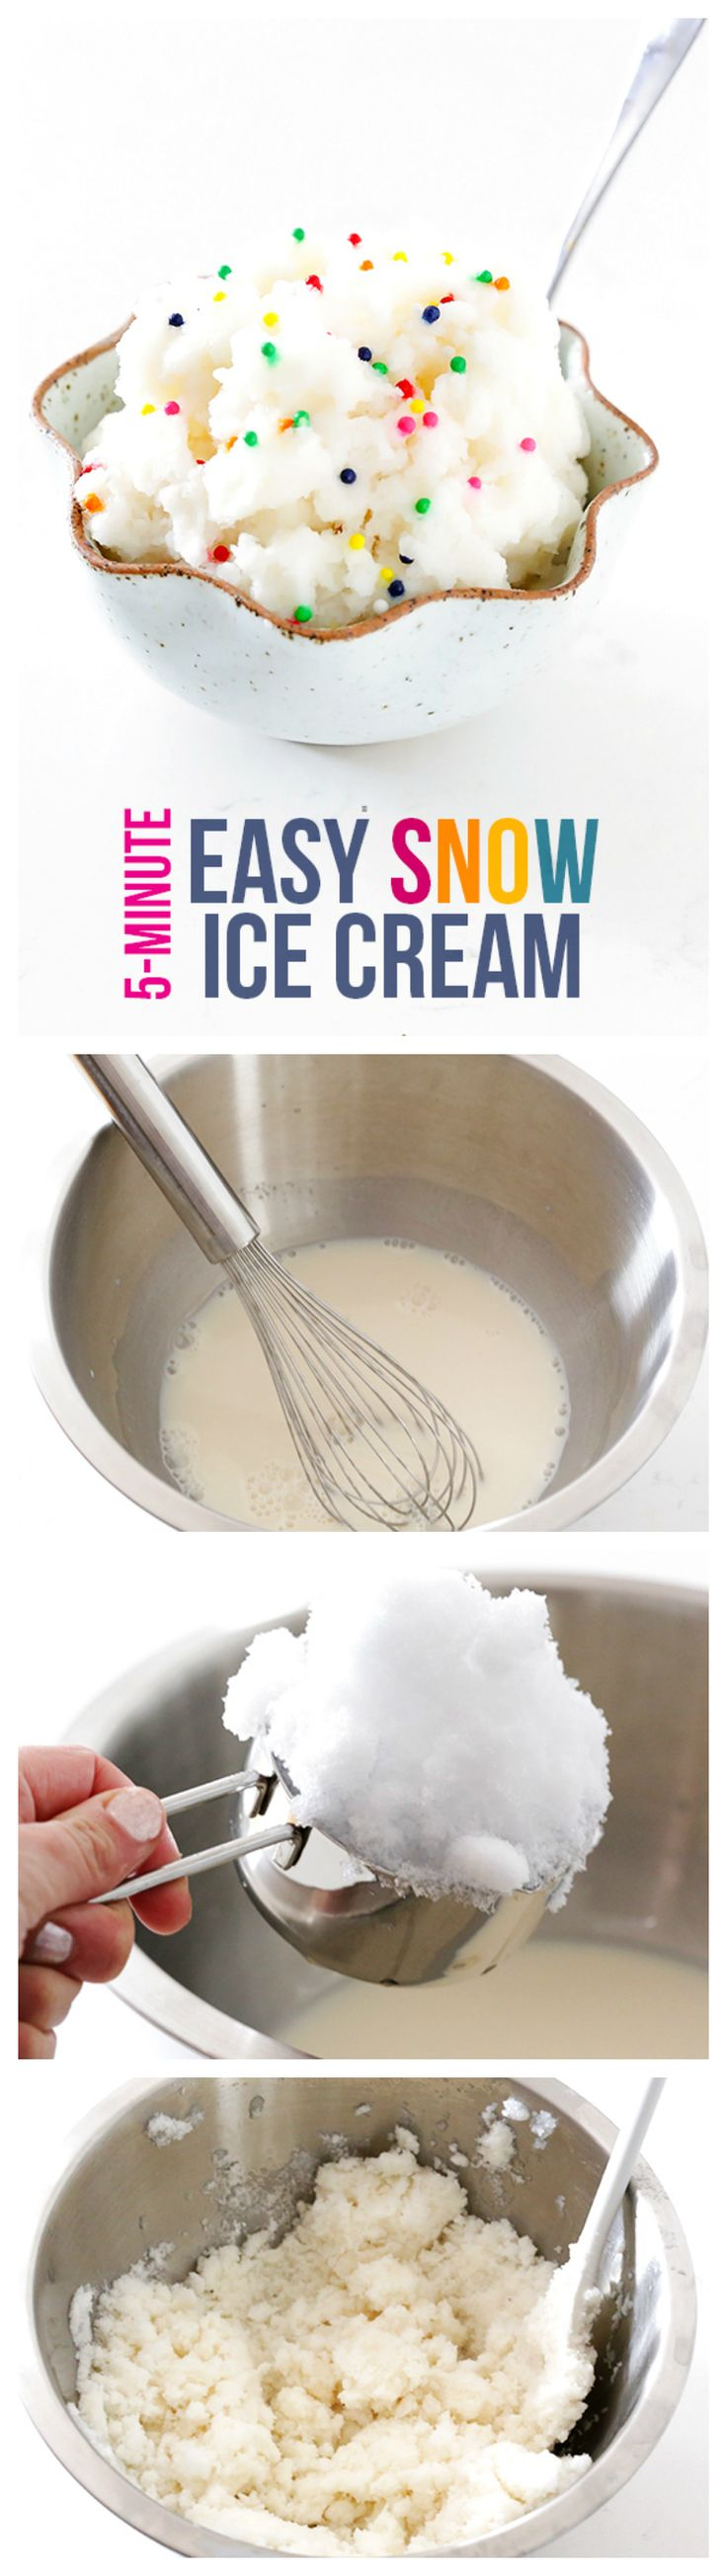 Snow Ice Cream -- it's so tasty, made with just 4 easy ingredients and REAL SNOW! | gimmesomeoven.com